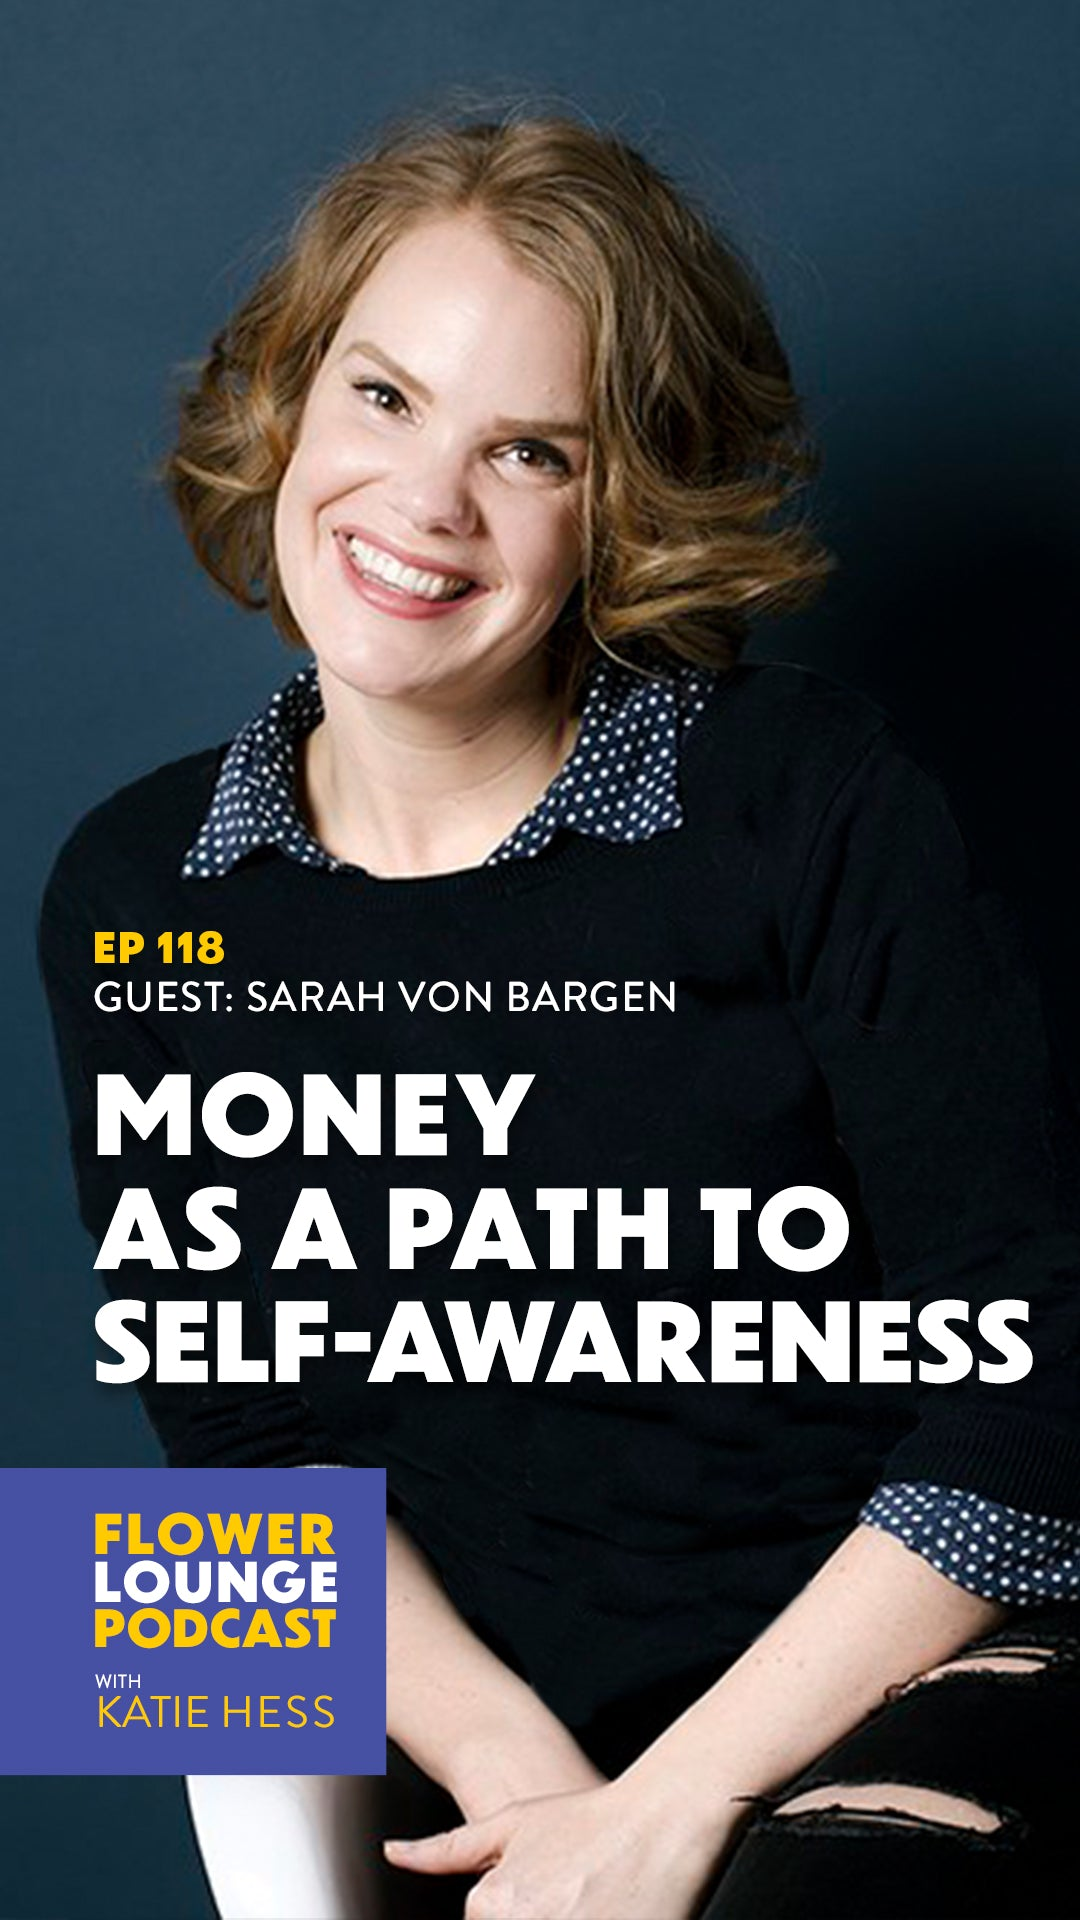 Money as a Path to Self-Awareness with Sarah Von Bargen on the Flowerlounge Podcast with Katie Hess